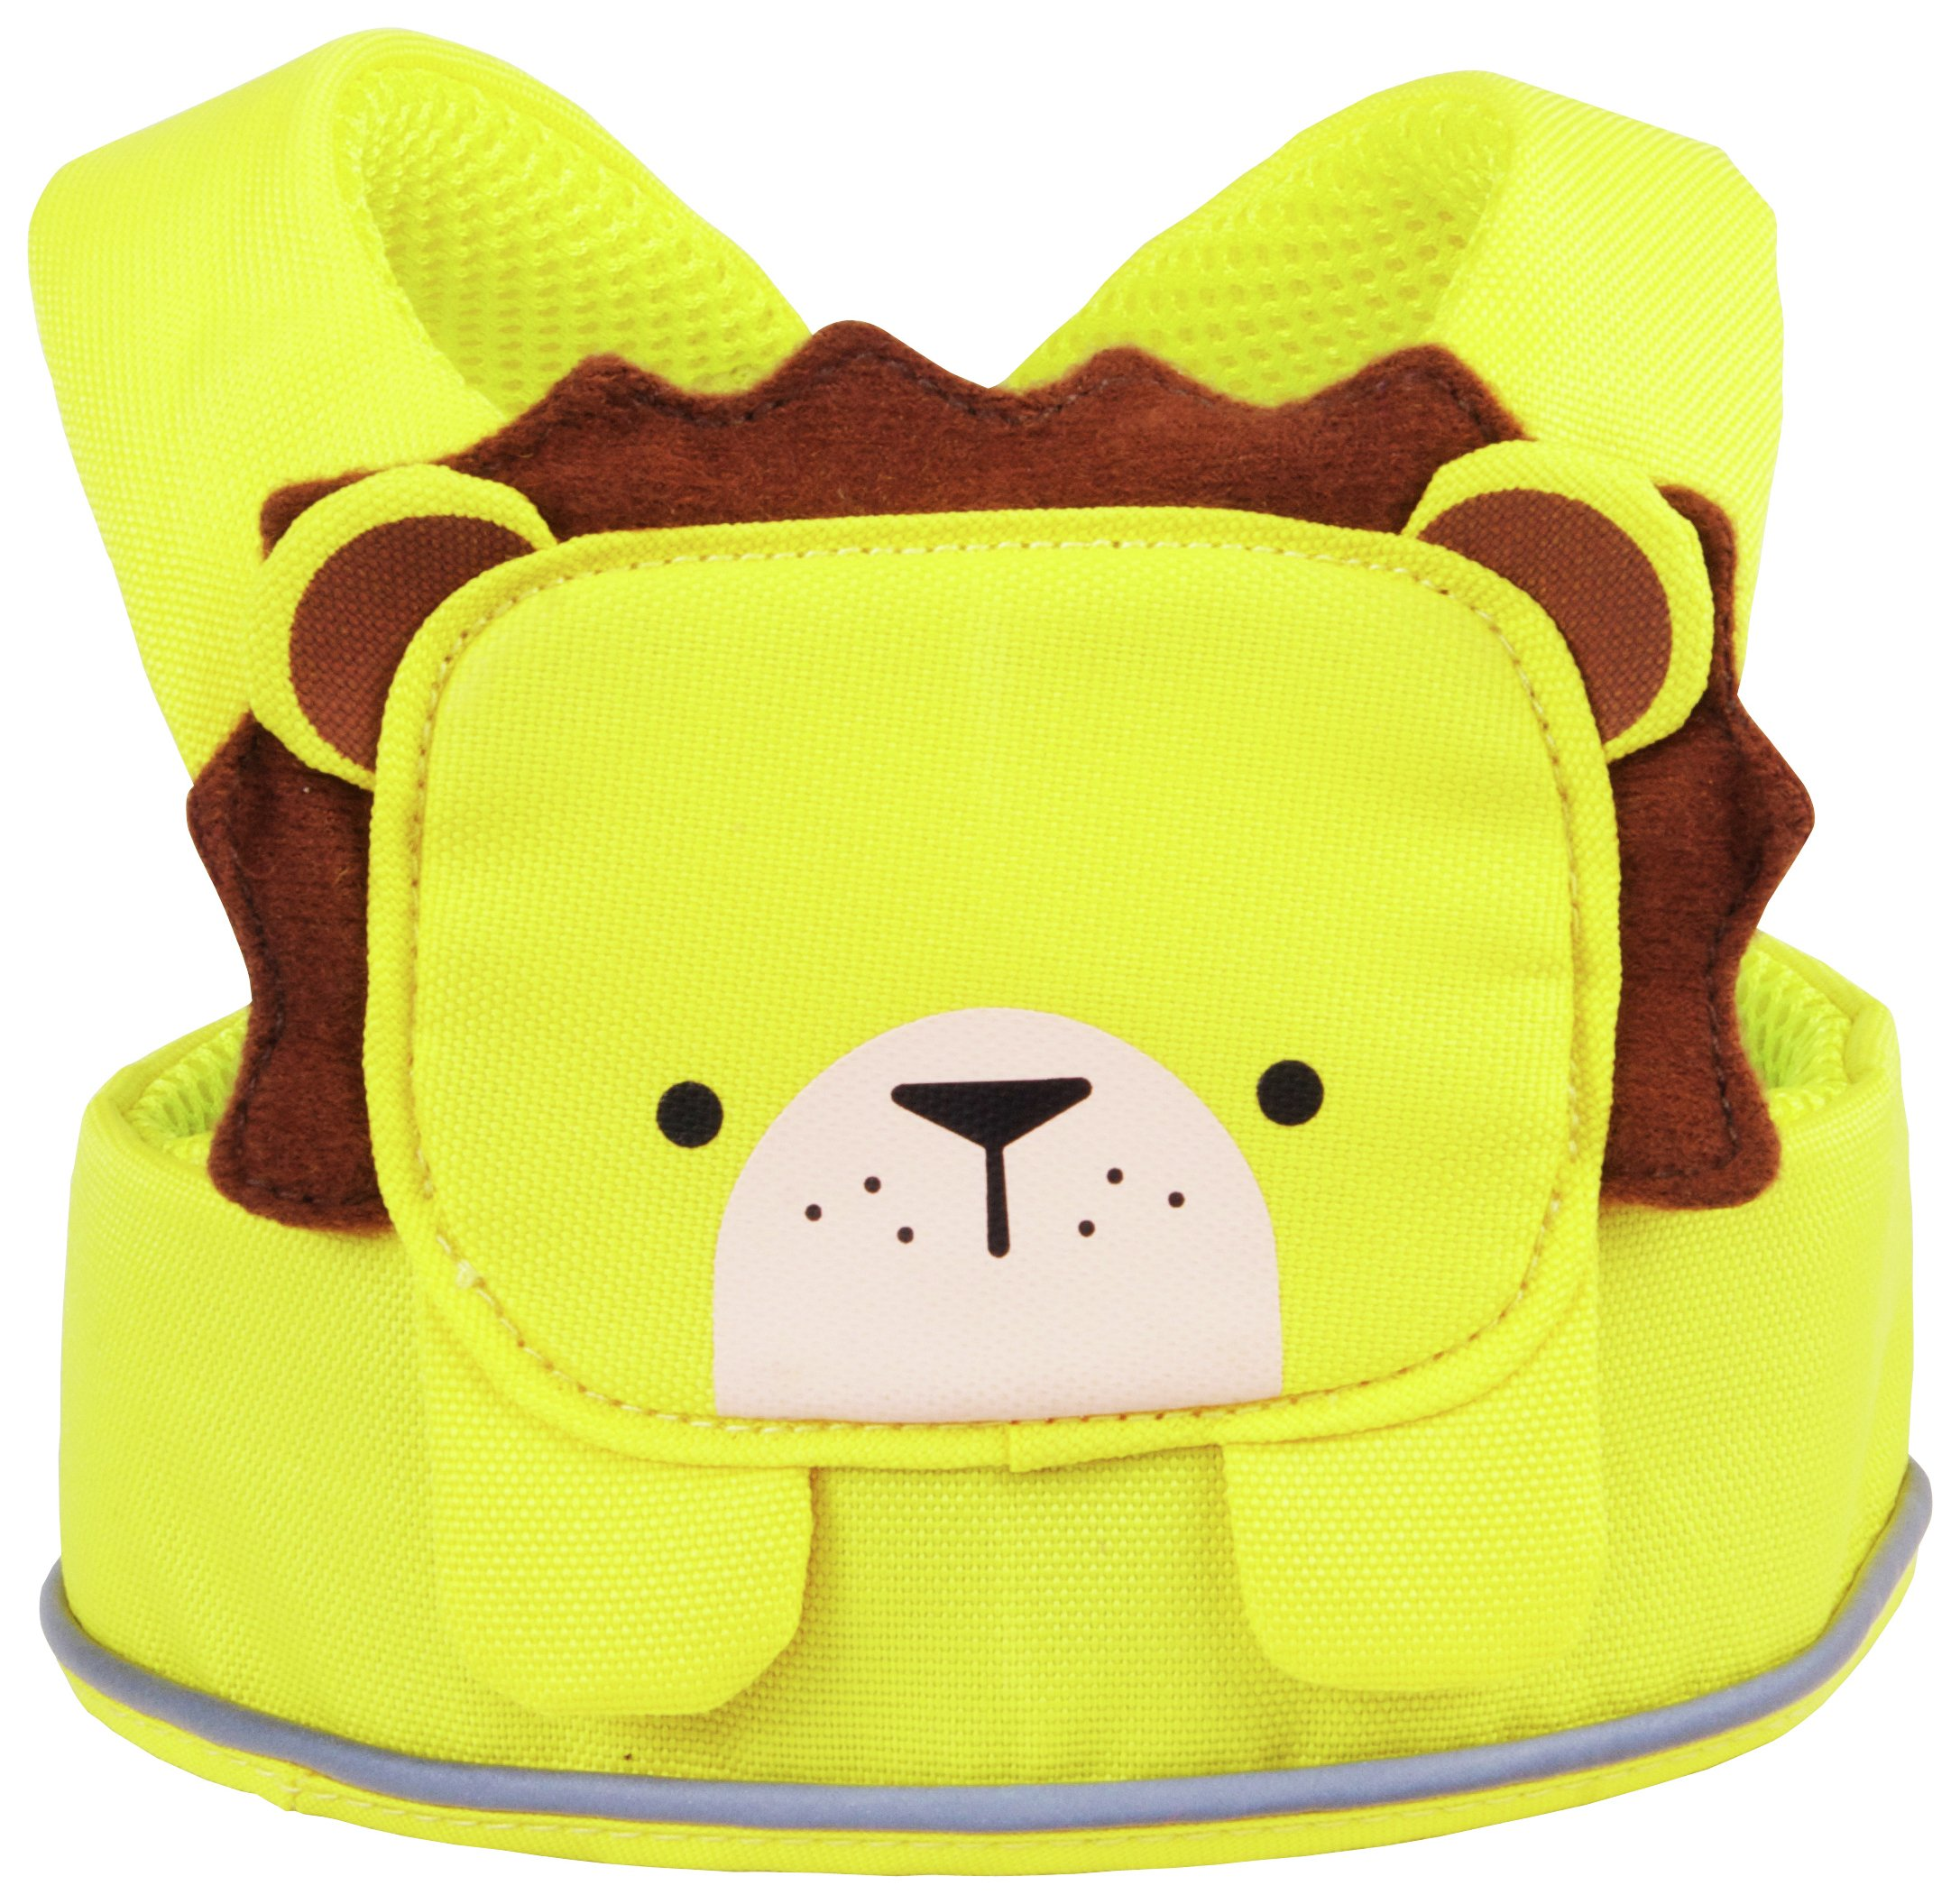 Image of Trunki Toddlepak Reins - Yellow Lion